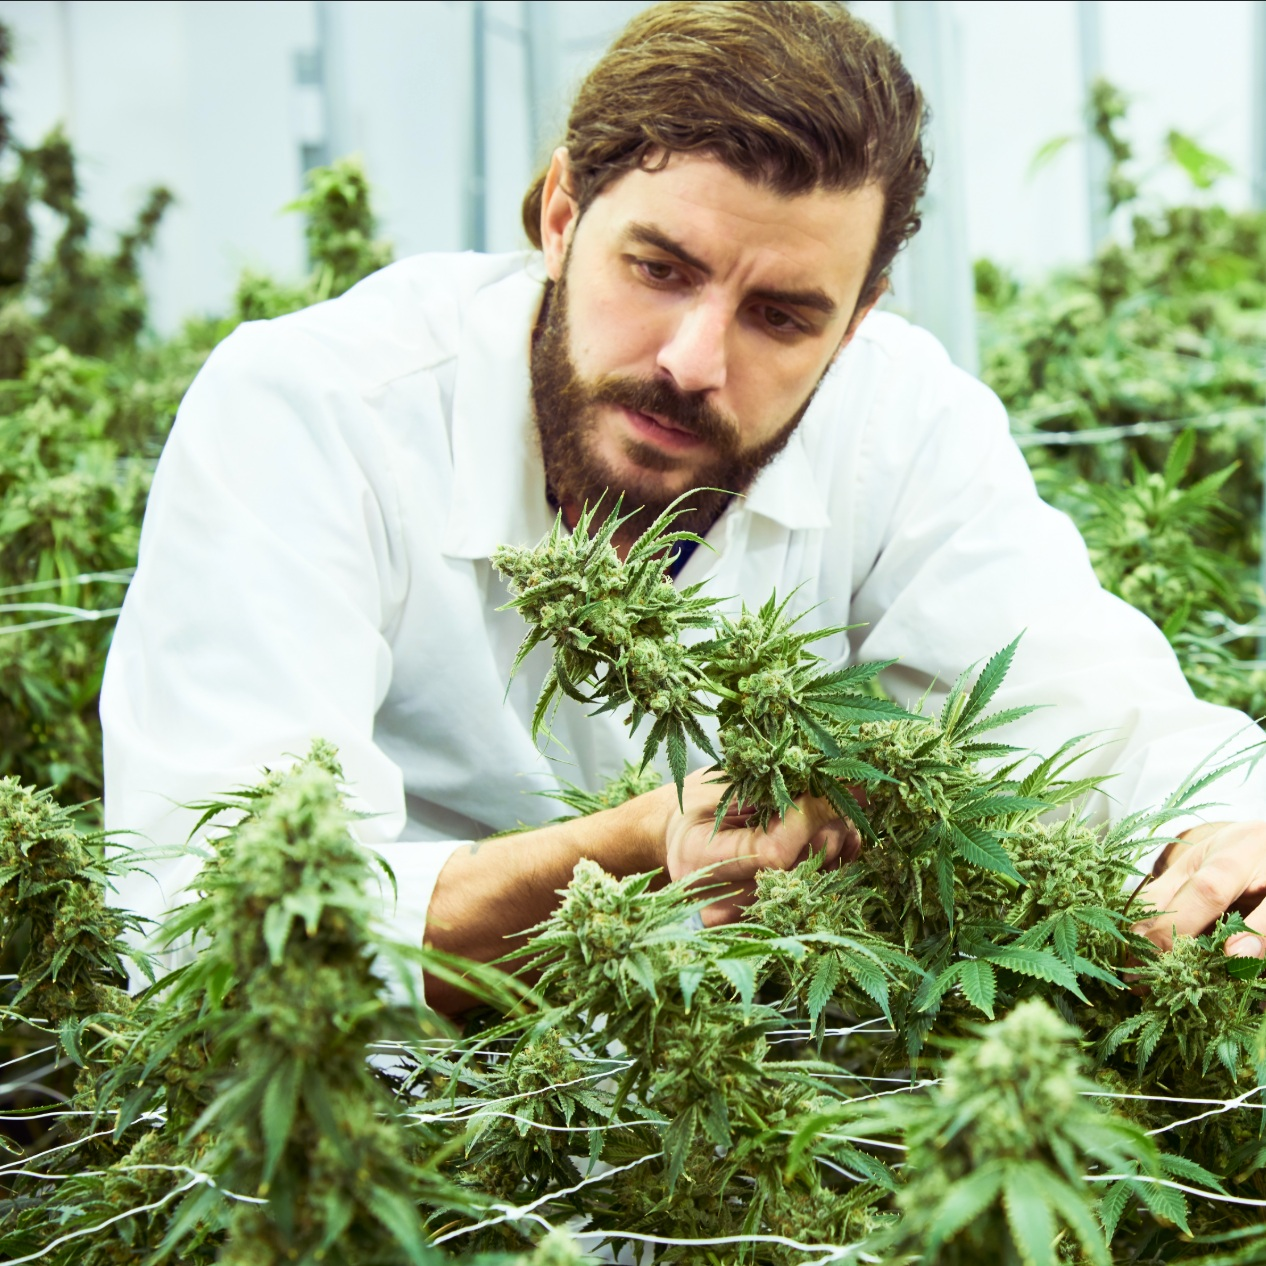 We grow state of the art but still use organics. We dry and cure like pros. We hand harvest and hand trim.